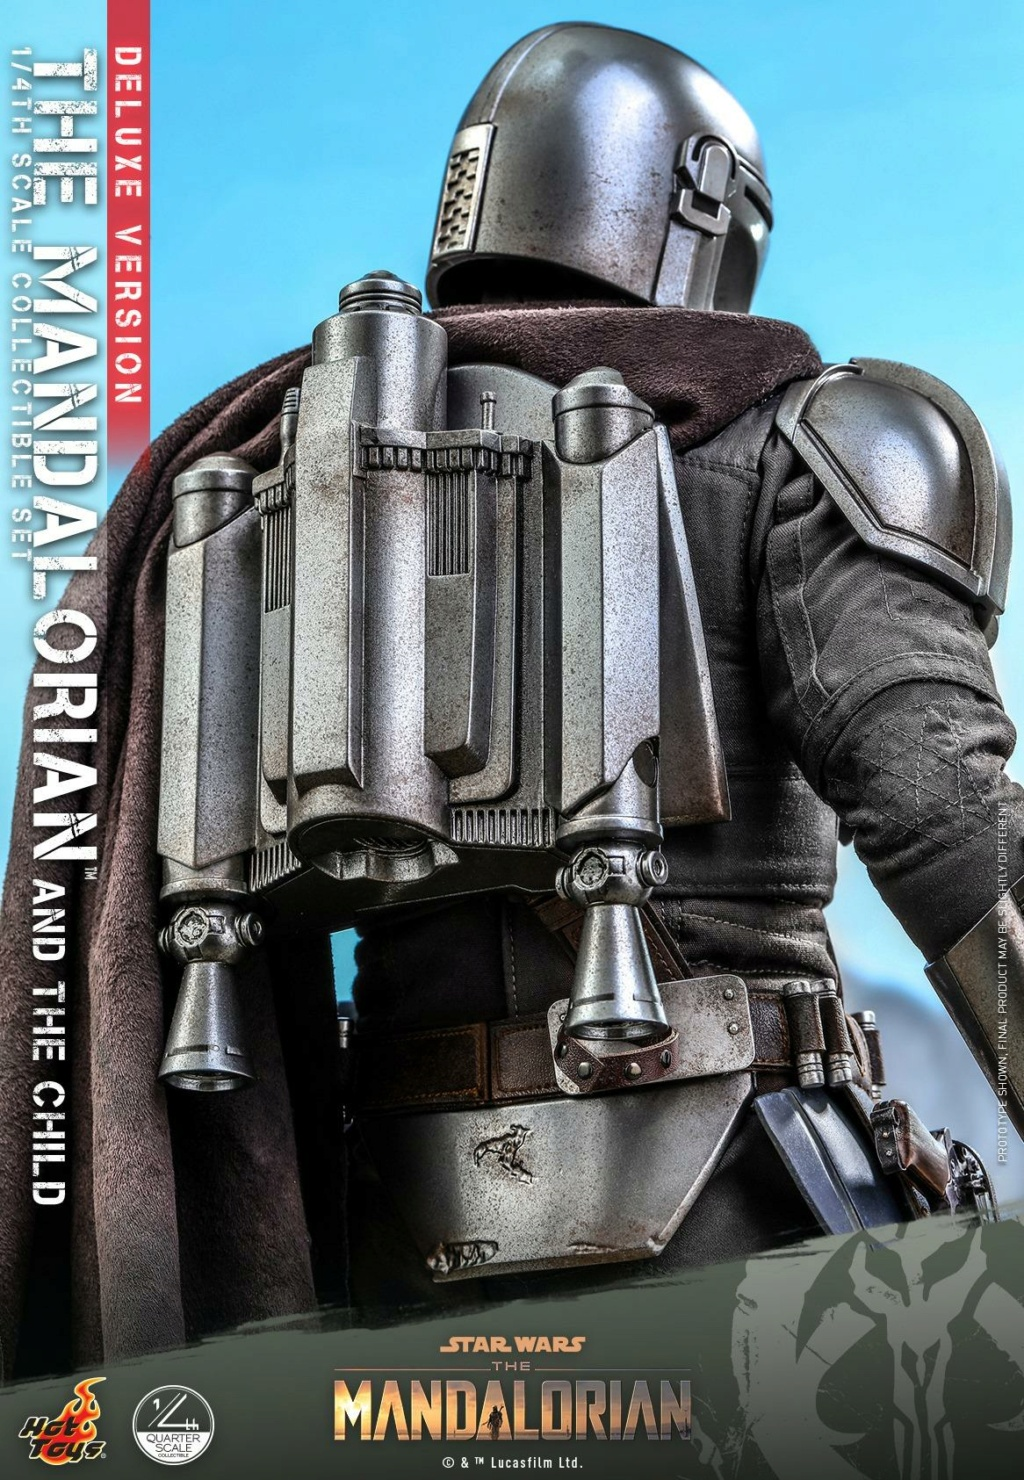 The Mandalorian & The Child Set (Deluxe) 1/4th - Hot Toys 1917